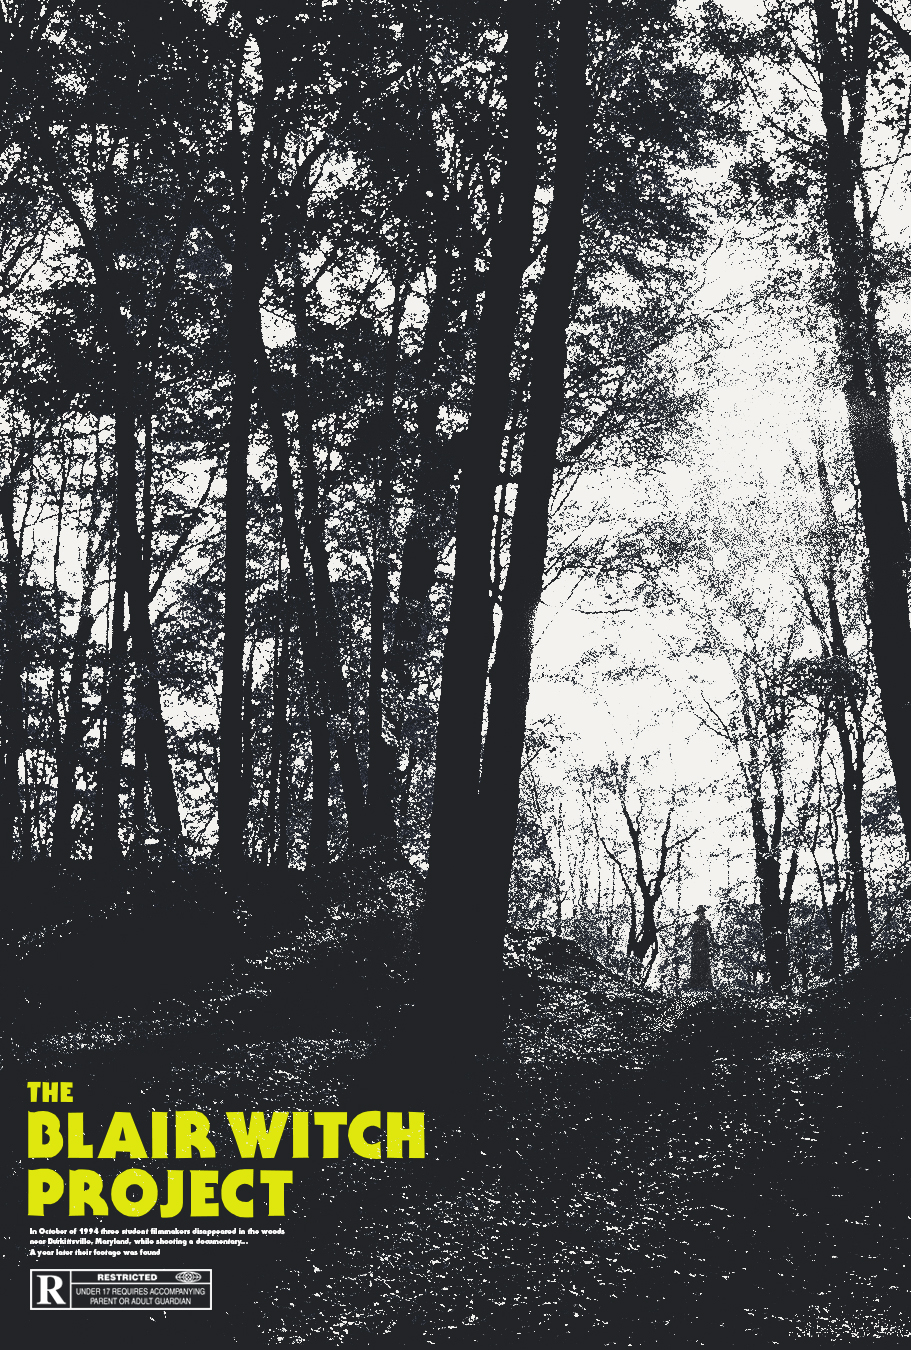 Digital Poster_BlairWitchProject.jpg